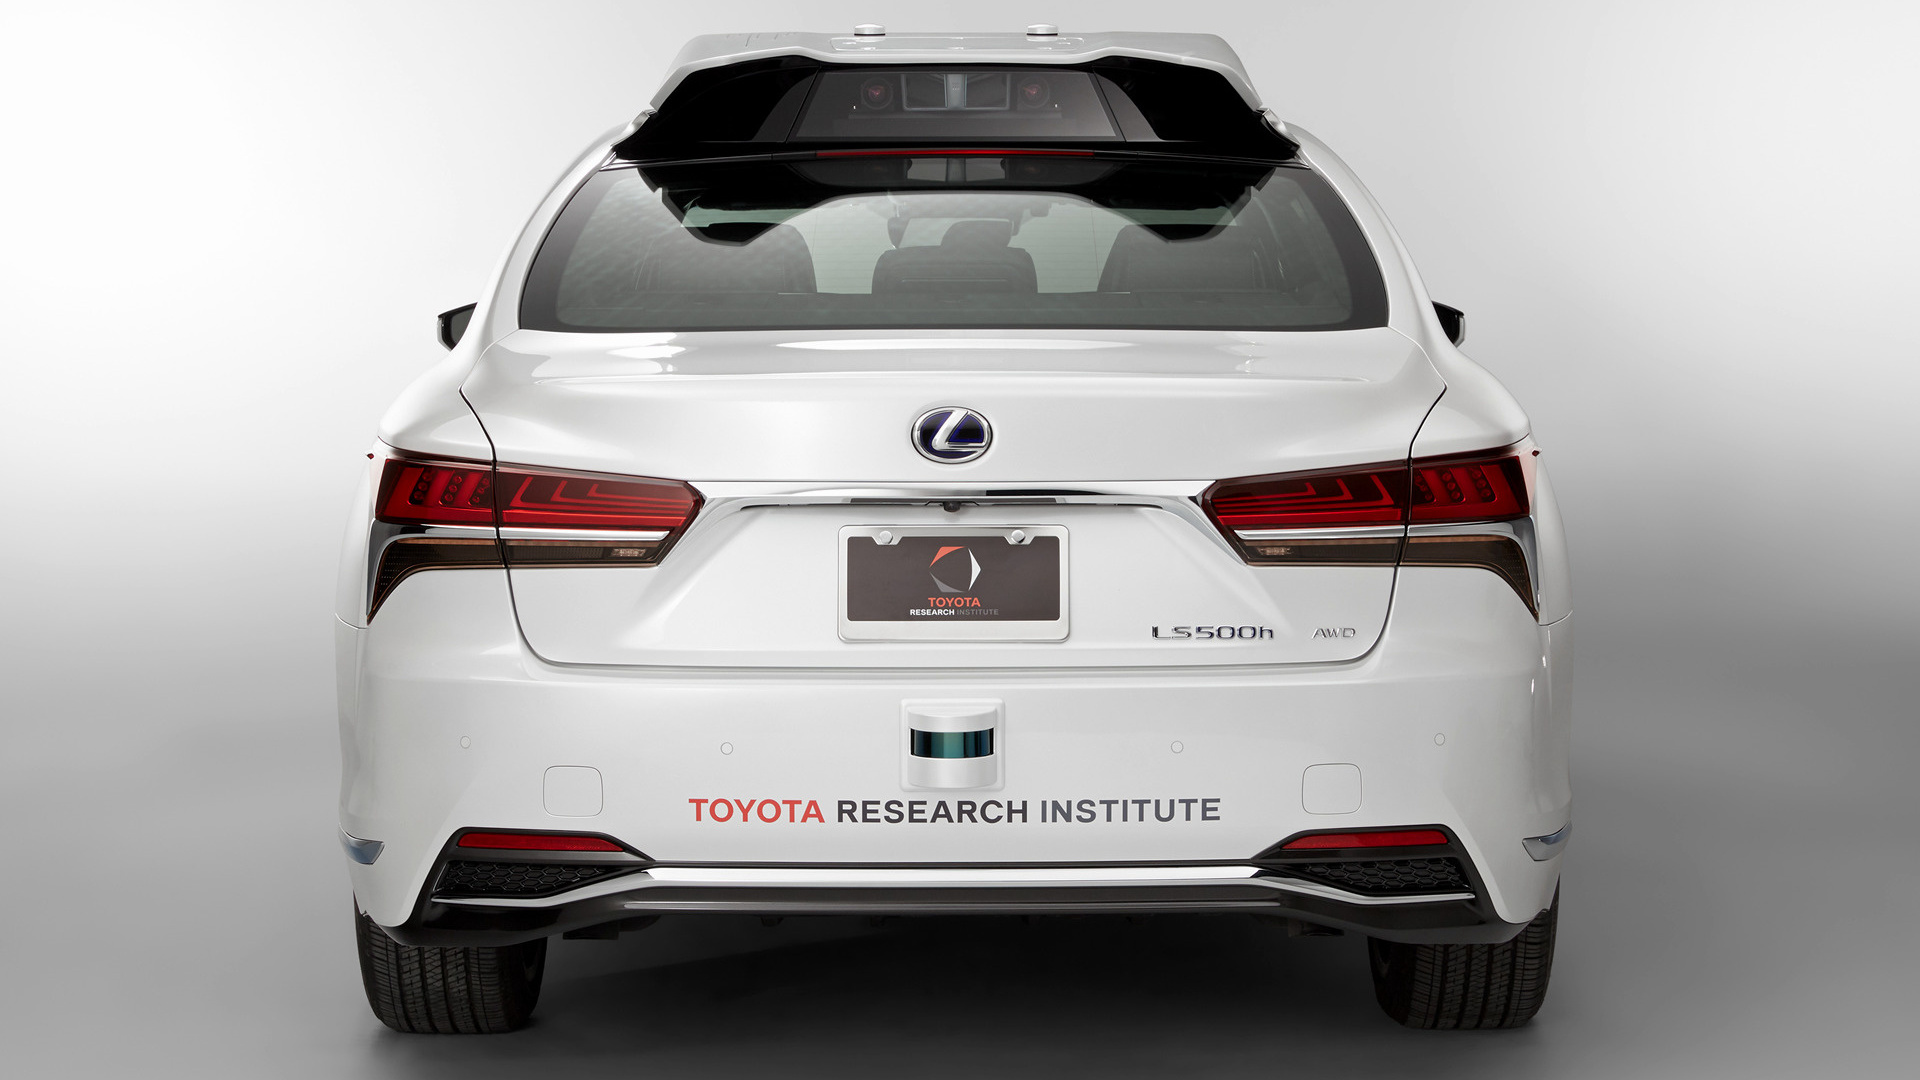 2019 Lexus Ls F >> 2019 Lexus LS Hybrid TRI-P4 Research Vehicle - Wallpapers and HD Images | Car Pixel